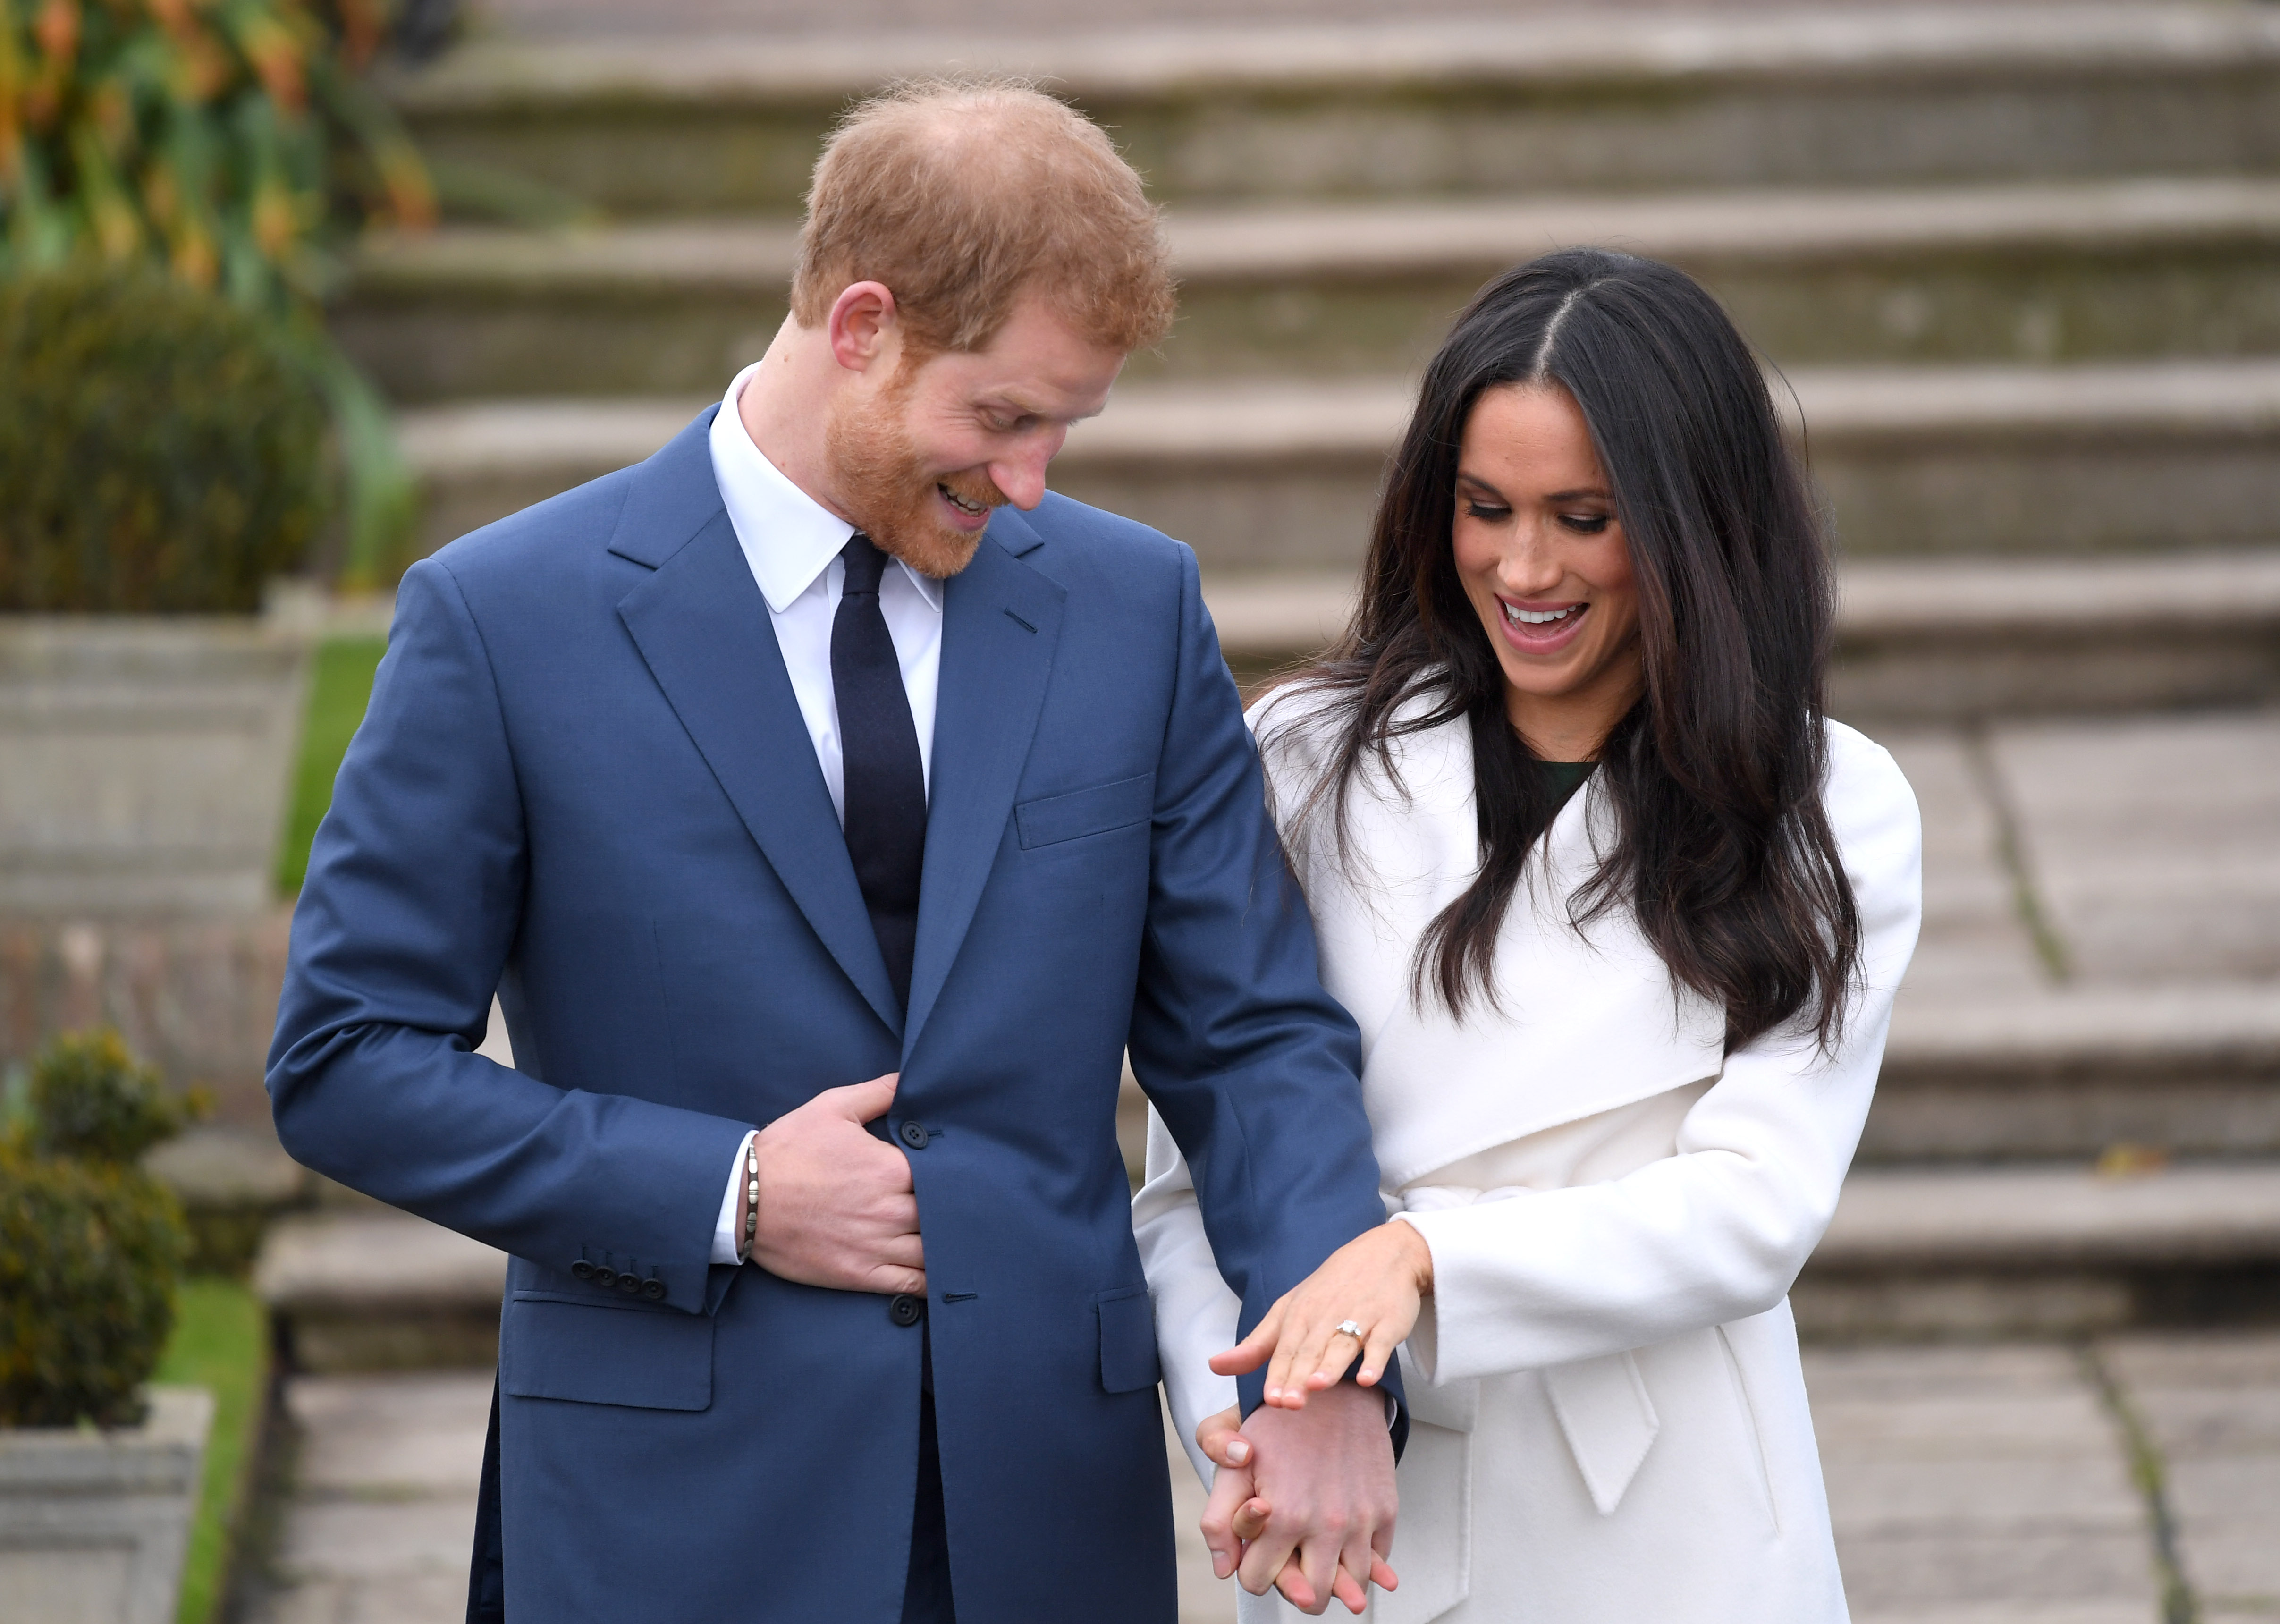 Royal Wedding Watch.How To Watch The Royal Wedding Your Guide To All The Coverage